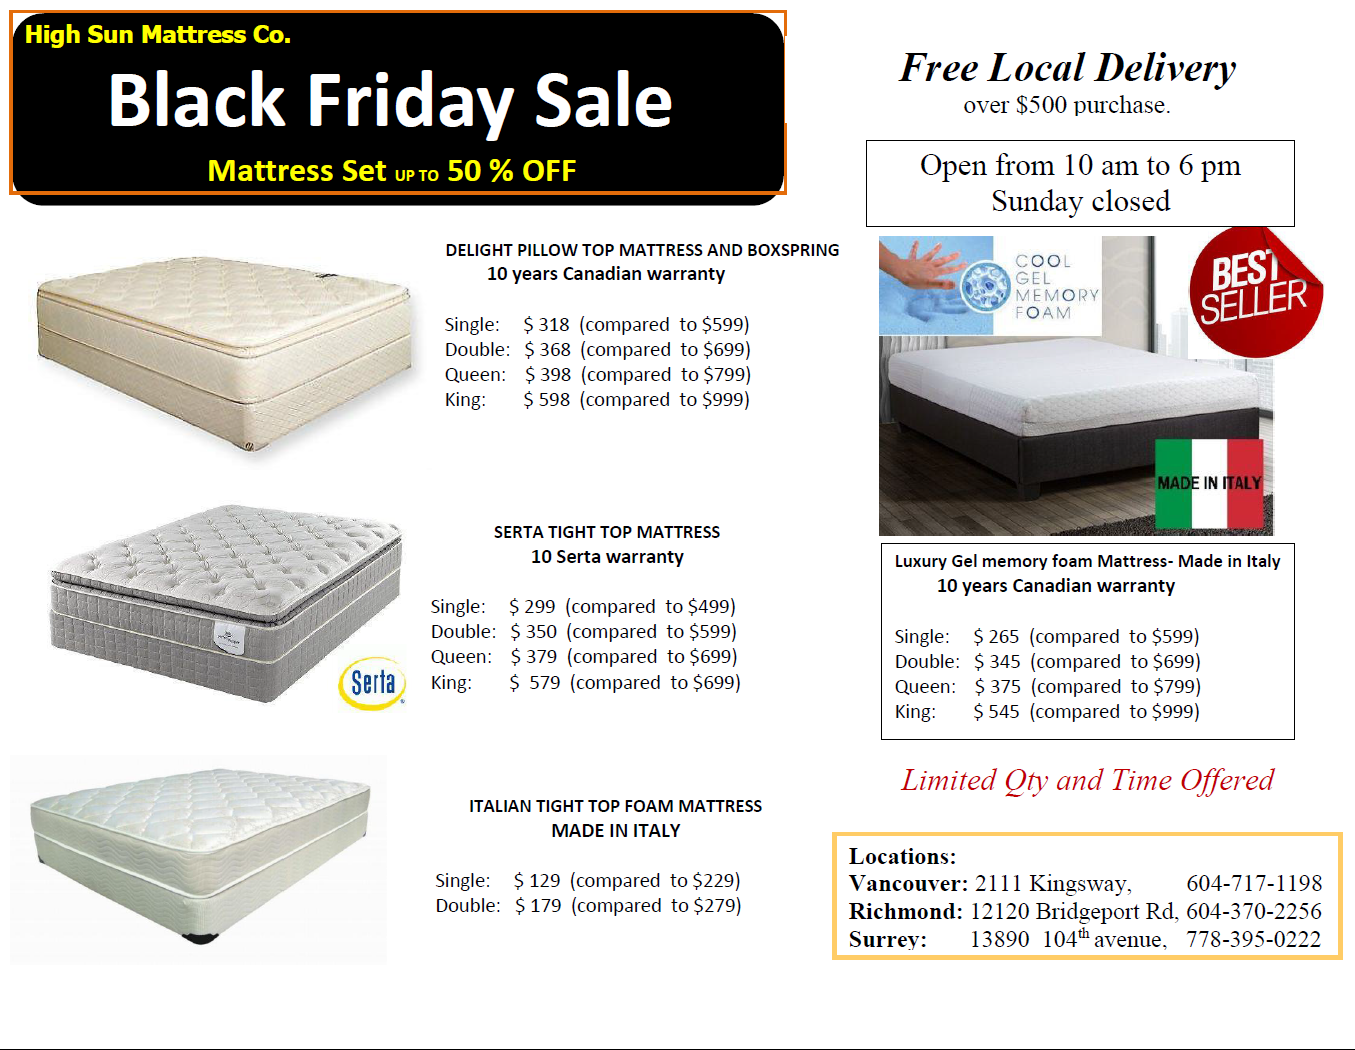 Black Friday mattress sale